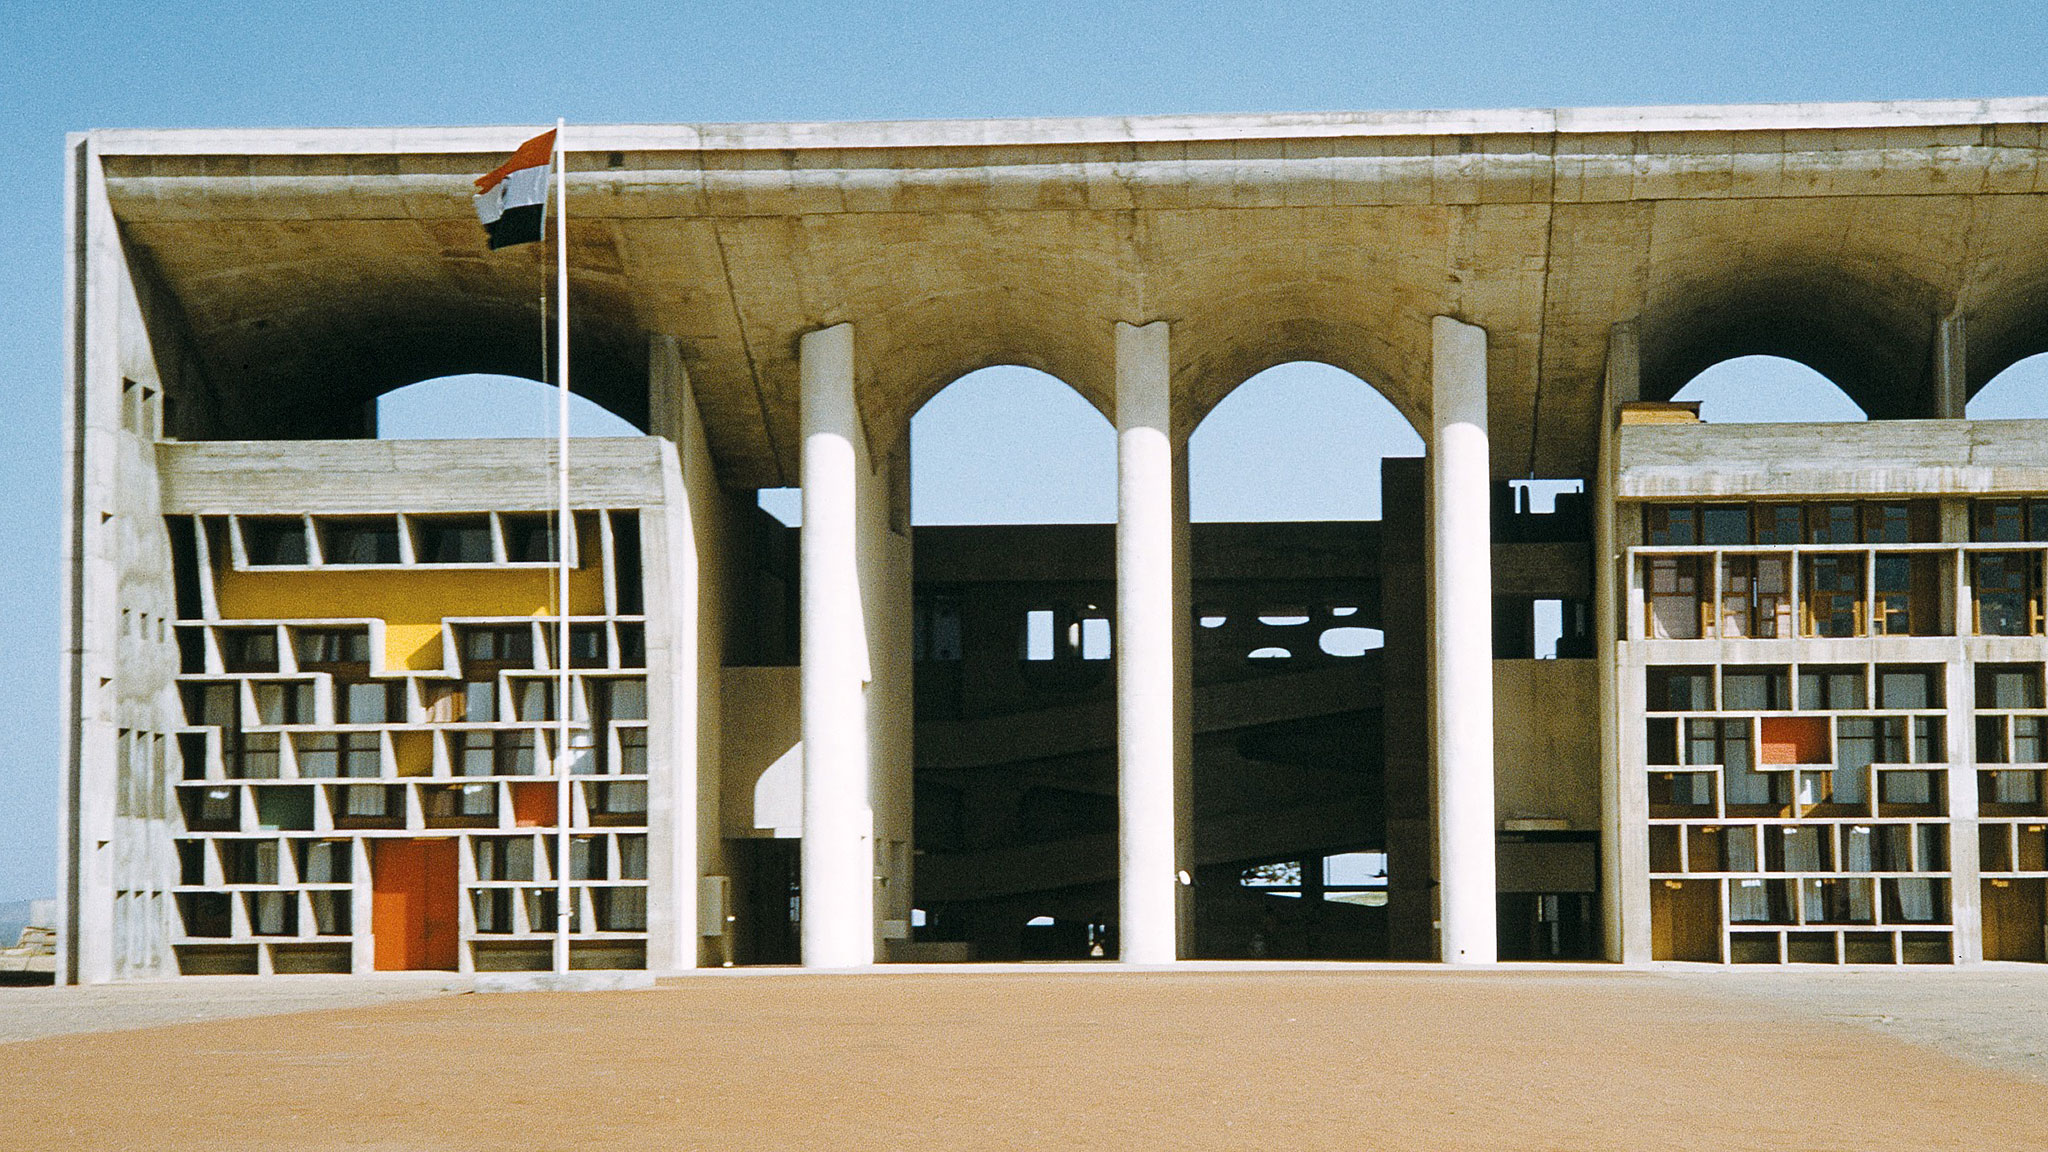 Le Corbusier's Chandigarh: an Indian city unlike any other